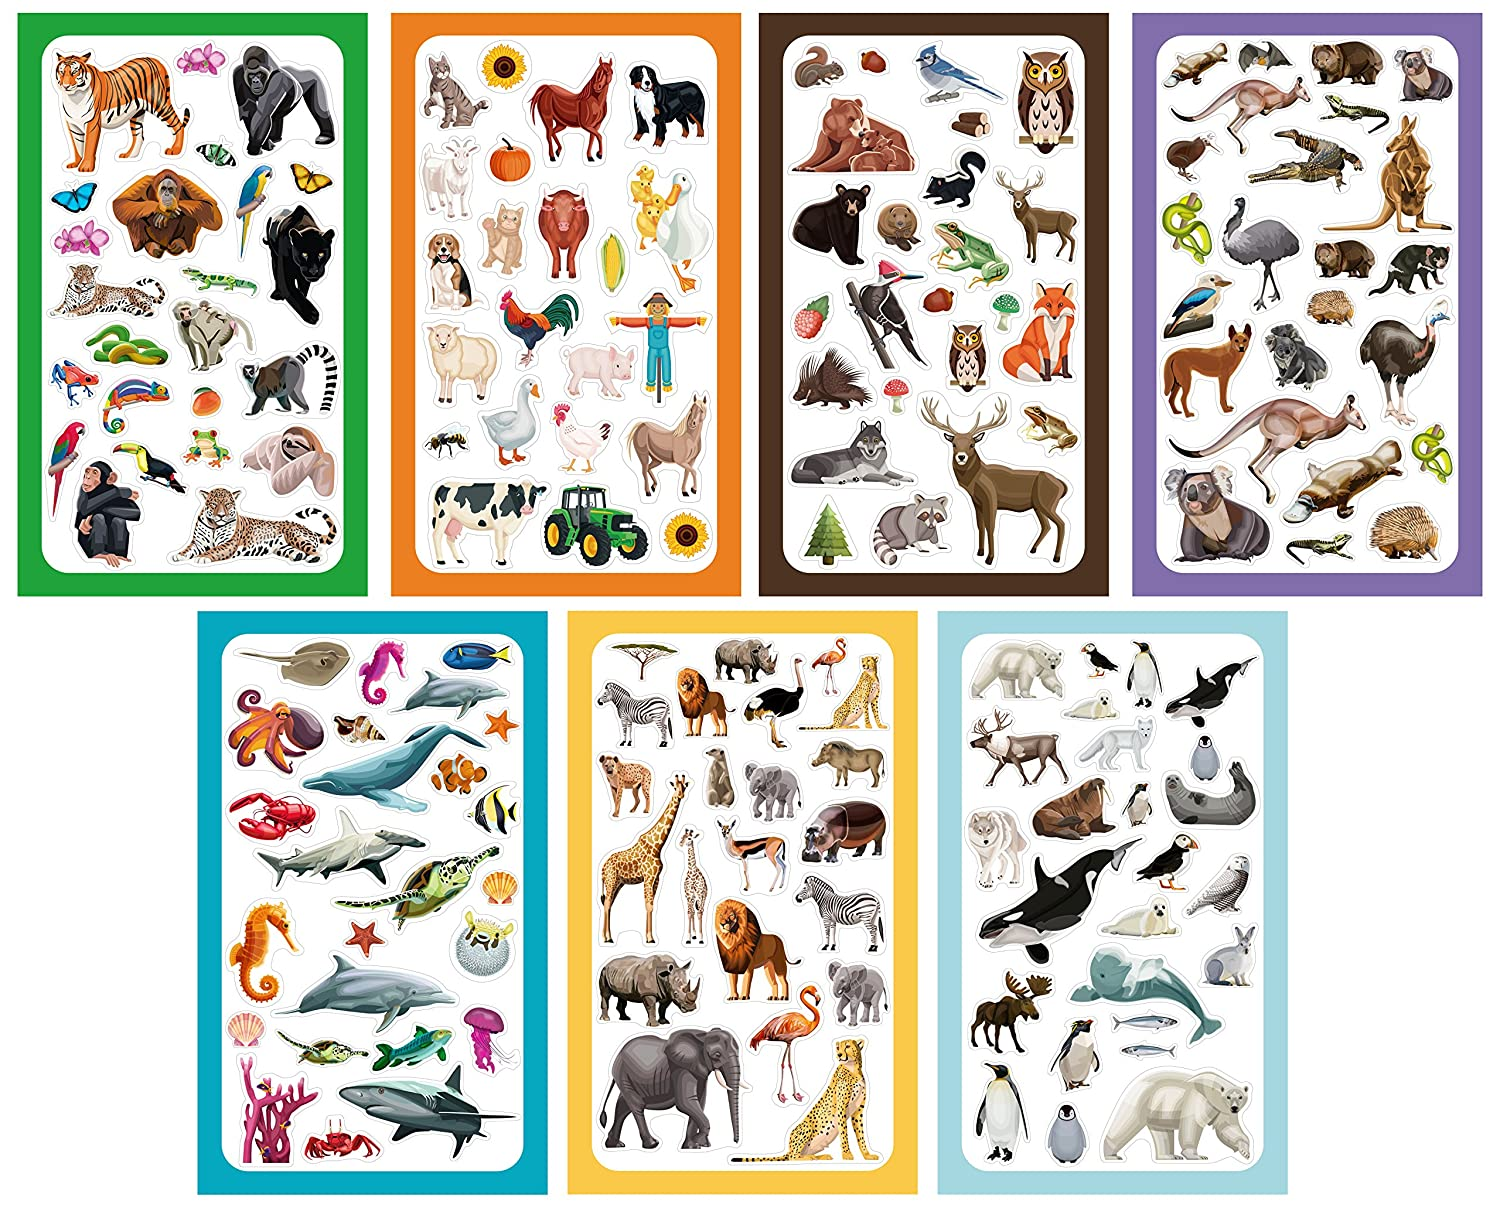 Koobar Animals of The World Sticker Variety Pack 300 Stickers